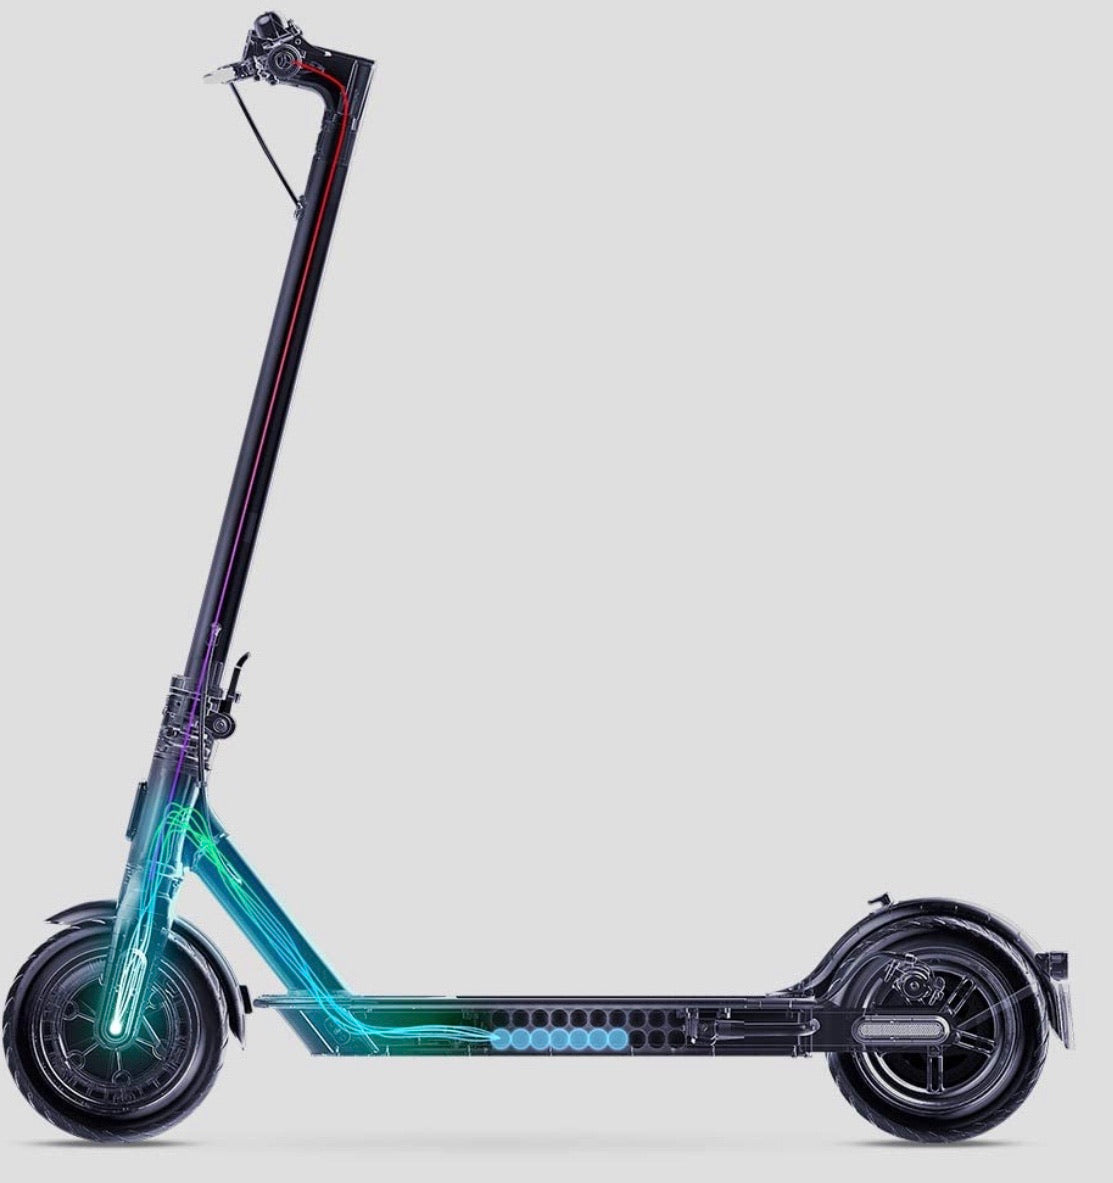 Xiaomi S1 Electric Scooter Improved Battery